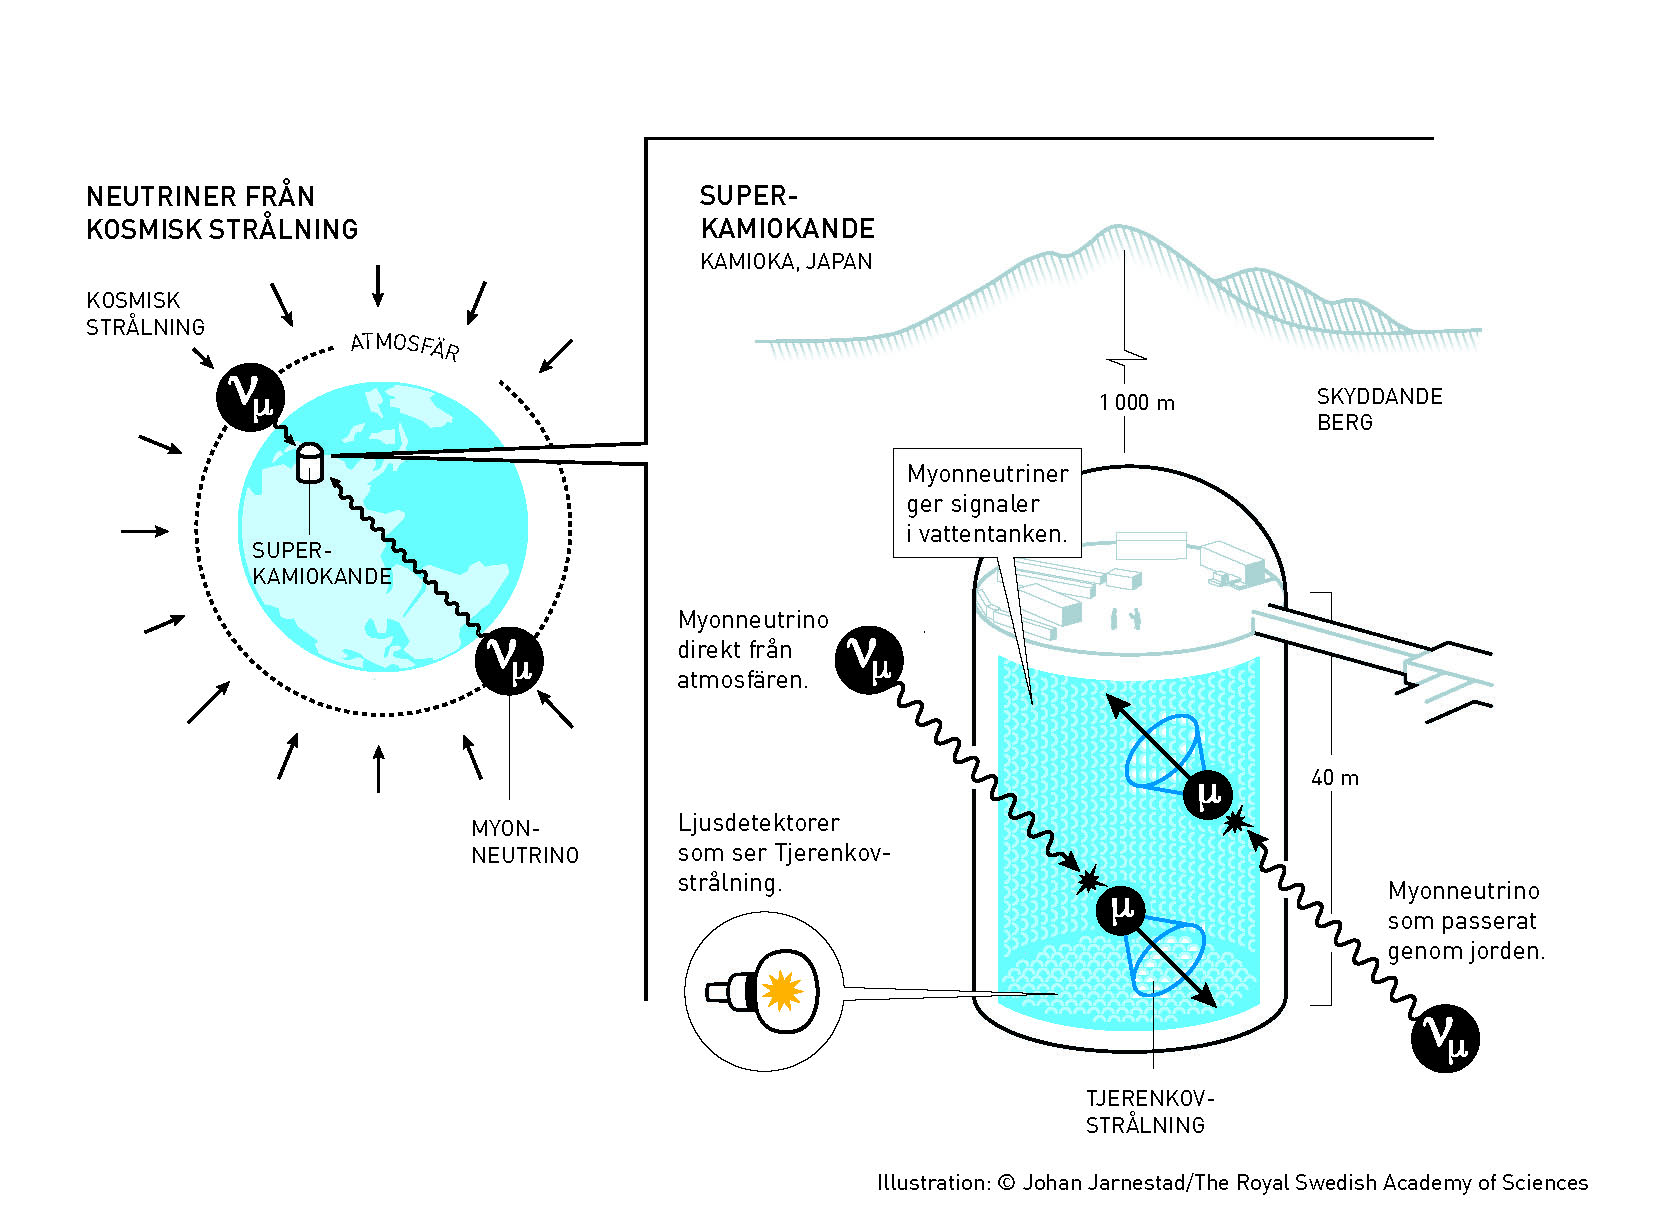 """""""Super-Kamiokande is a gigantic detector built 1,000 metres below the Earth's surface. It consists of a tank, 40 metres high and as wide, filled with 50,000 tonnes of water. The water is so pure that light beams can travel 70 metres before their intensity is halved, compared to just a few metres in an ordinary swimming pool,"""" The Nobel committee wrote. """"Every now and then, a neutrino collides with an atomic nucleus or an electron in the water. These collisions create charged particles – muons from muon-neutrinos and electrons from electron-neutrinos. Around the charged particles, faint flashes of blue light are generated. This is Cherenkov light, which arises when a particle travels faster than the speed of light. The shape and intensity of the Cherenkov light reveals what type of neutrino it is caused by, and from where it comes.""""  Photo by The Royal Swedish Academy of Sciences."""